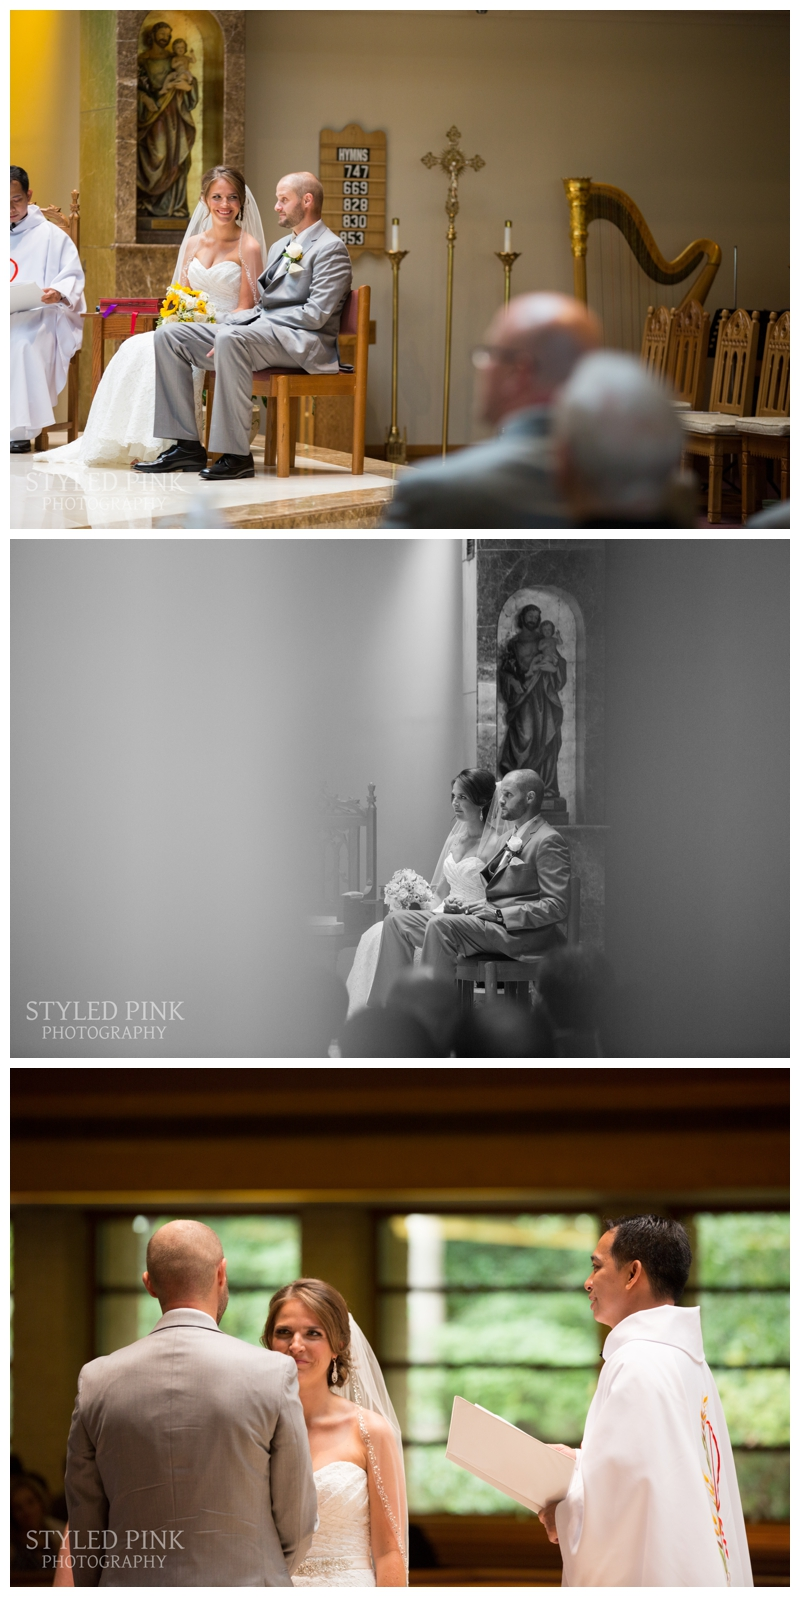 I loved the natural light on the alter while Paul and Katie exchanged vows- how cute are they?